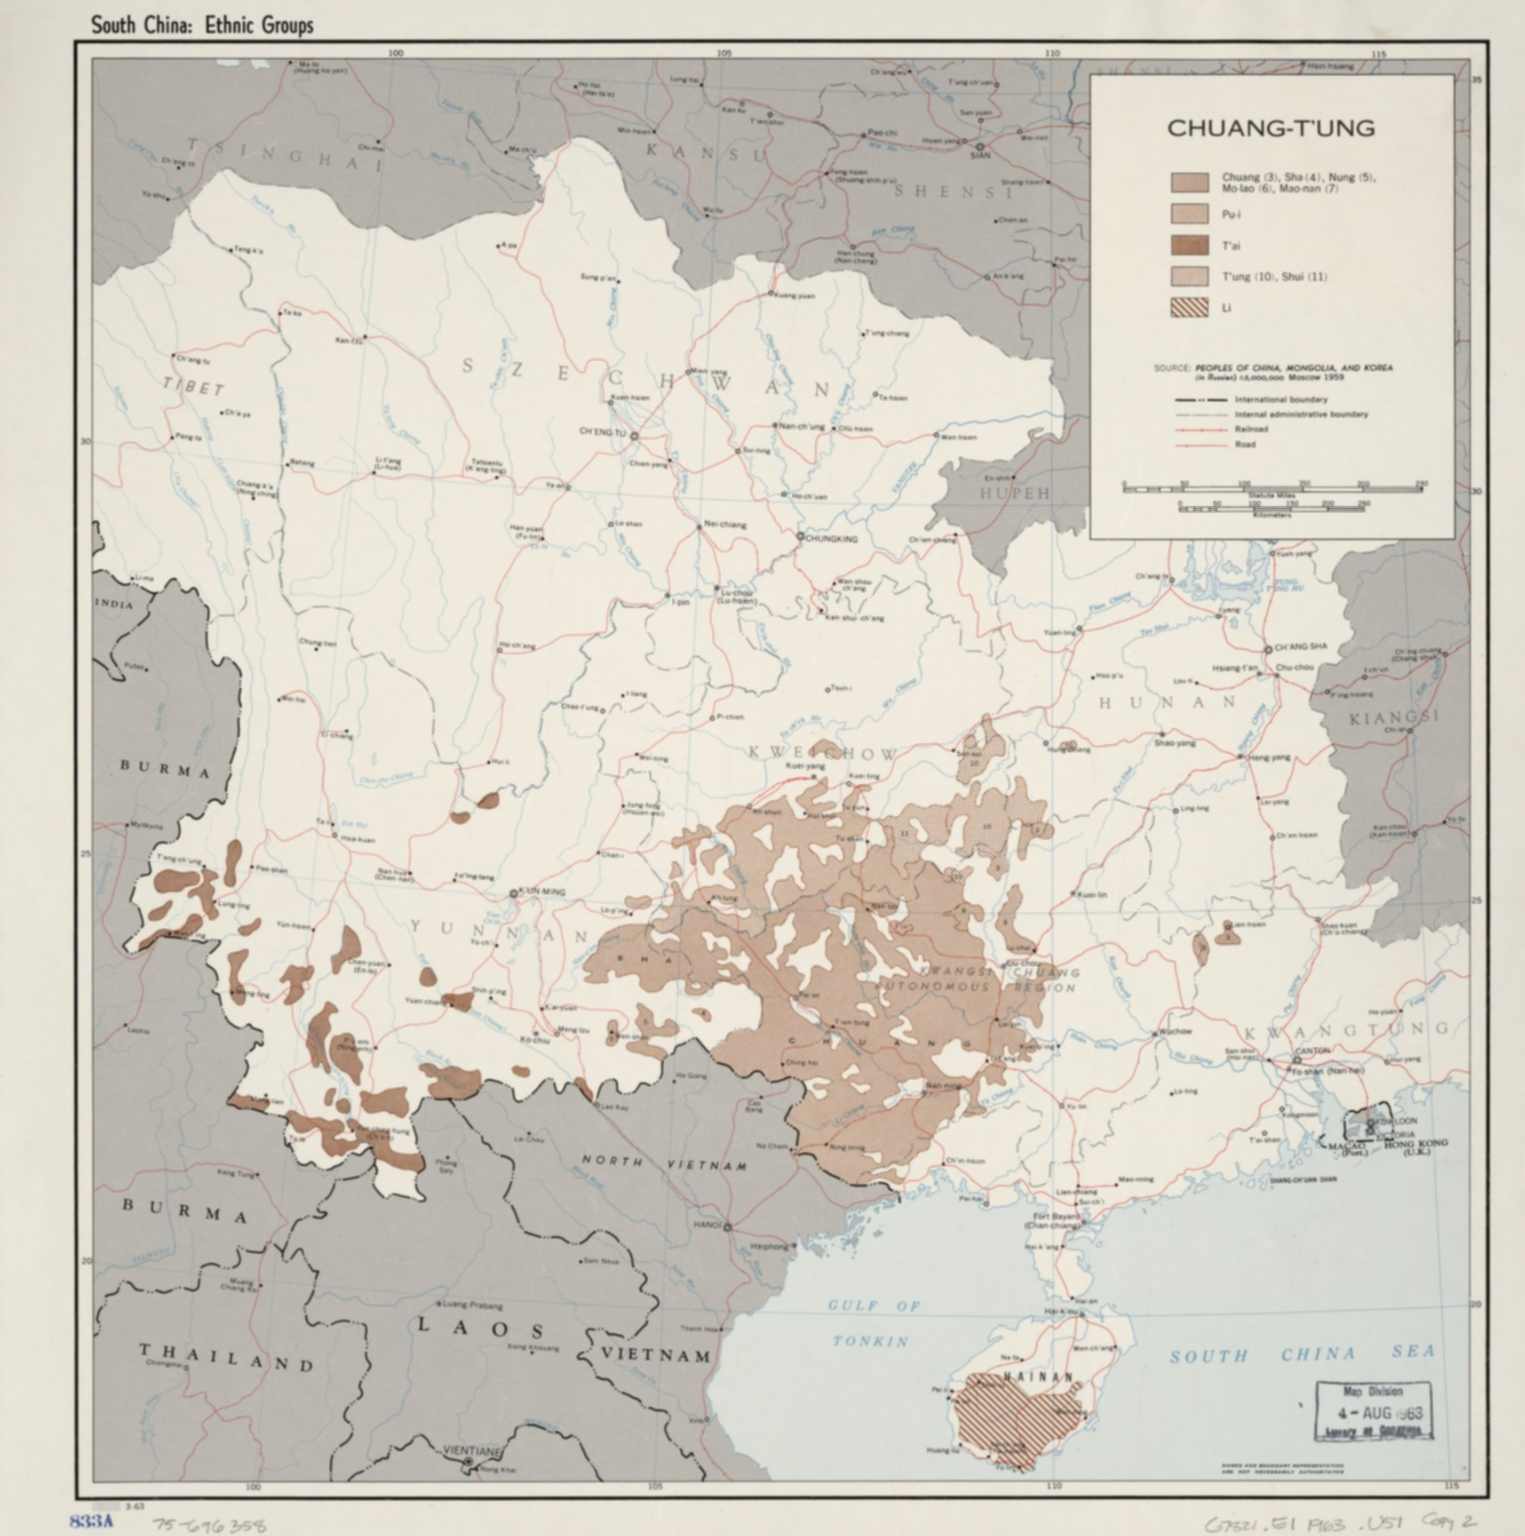 South China: Ethnic groups. 3-63